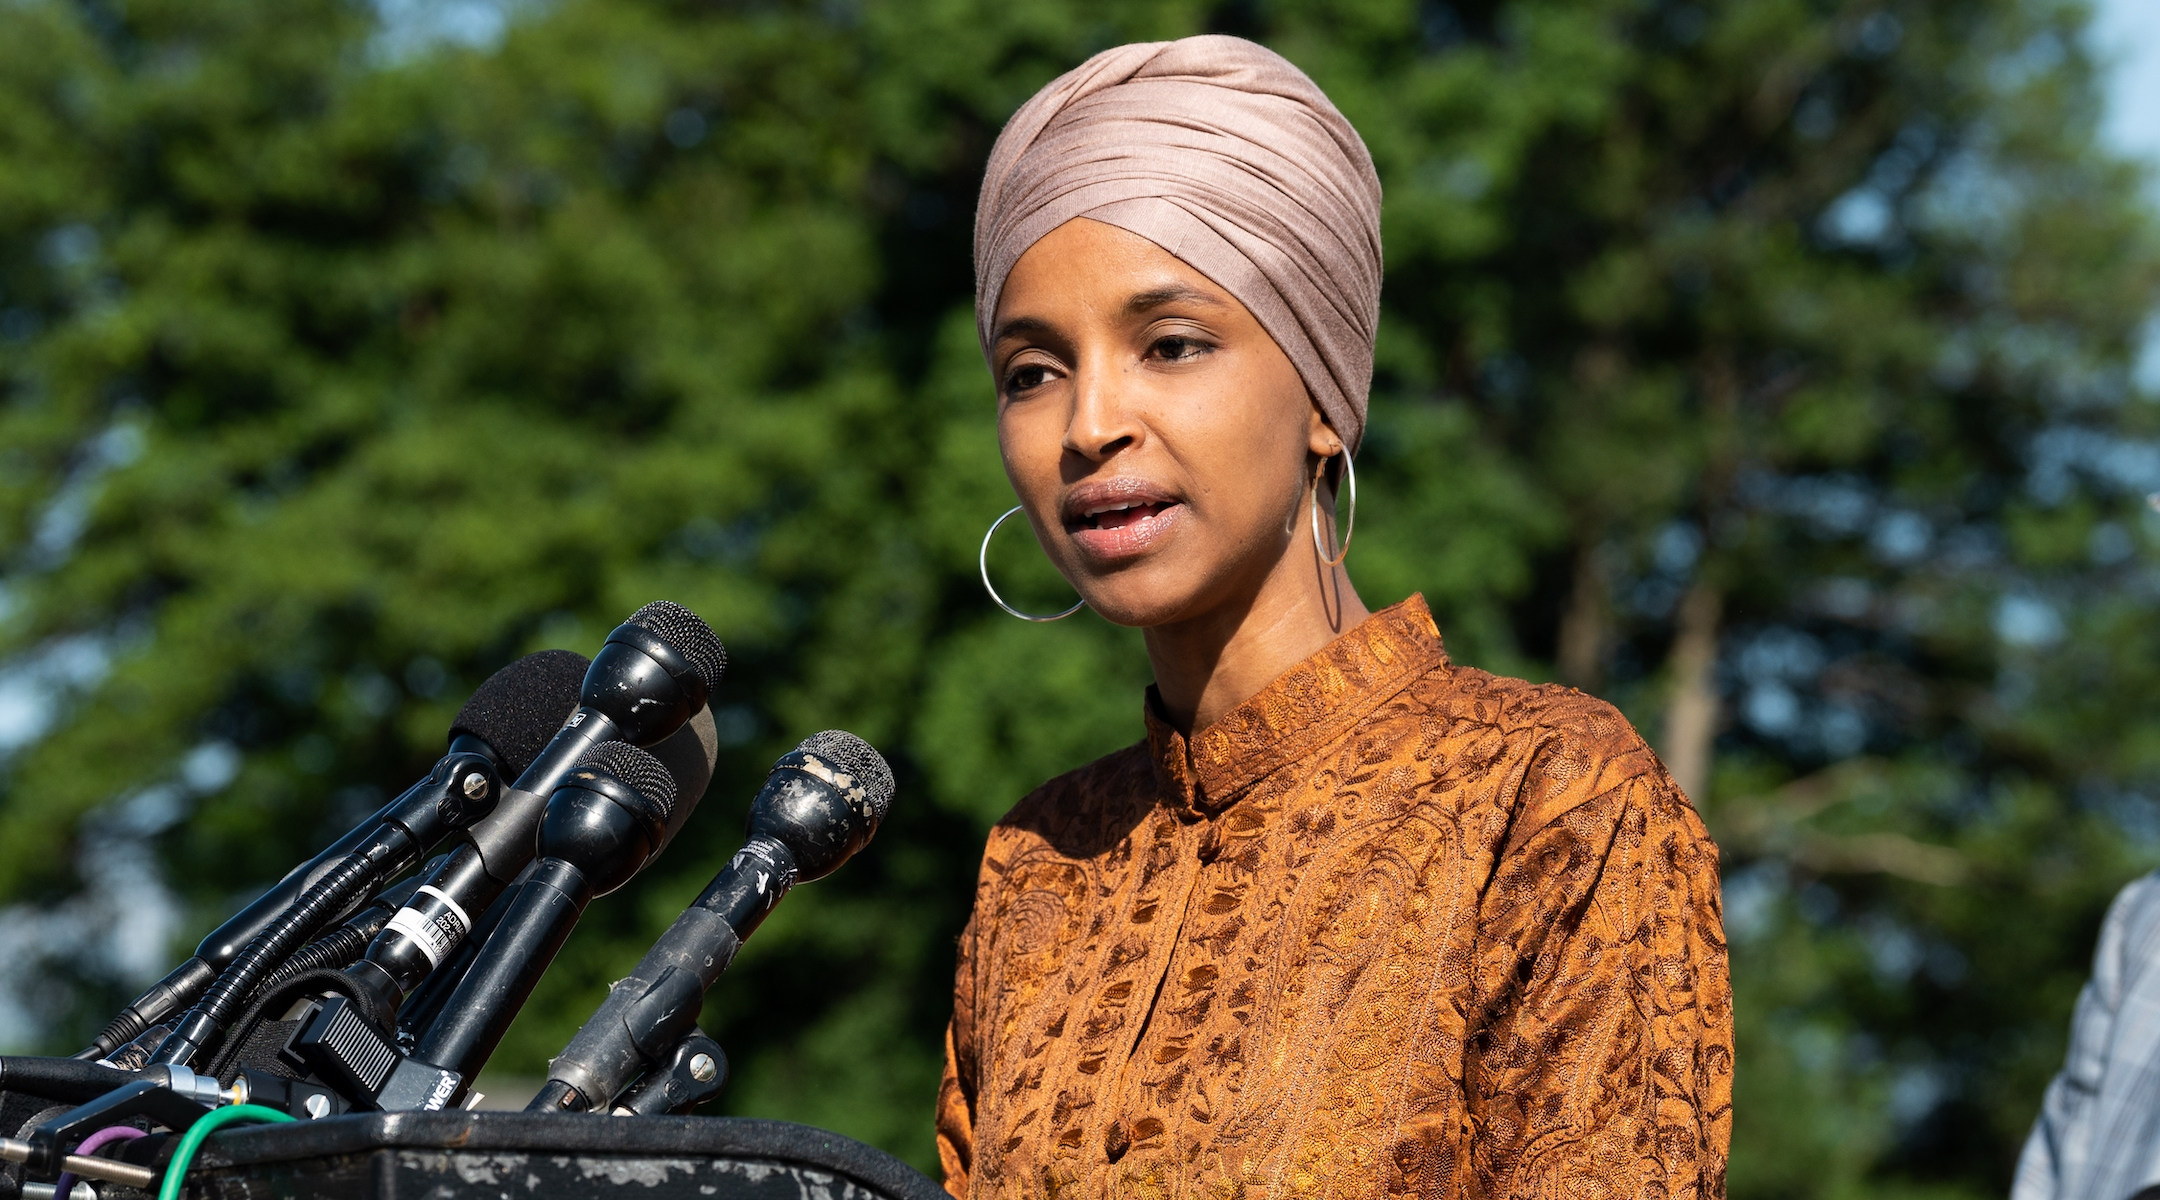 Ilhan Omar endorsed by Nancy Pelosi while a primary challenger attracts support from pro-Israel givers